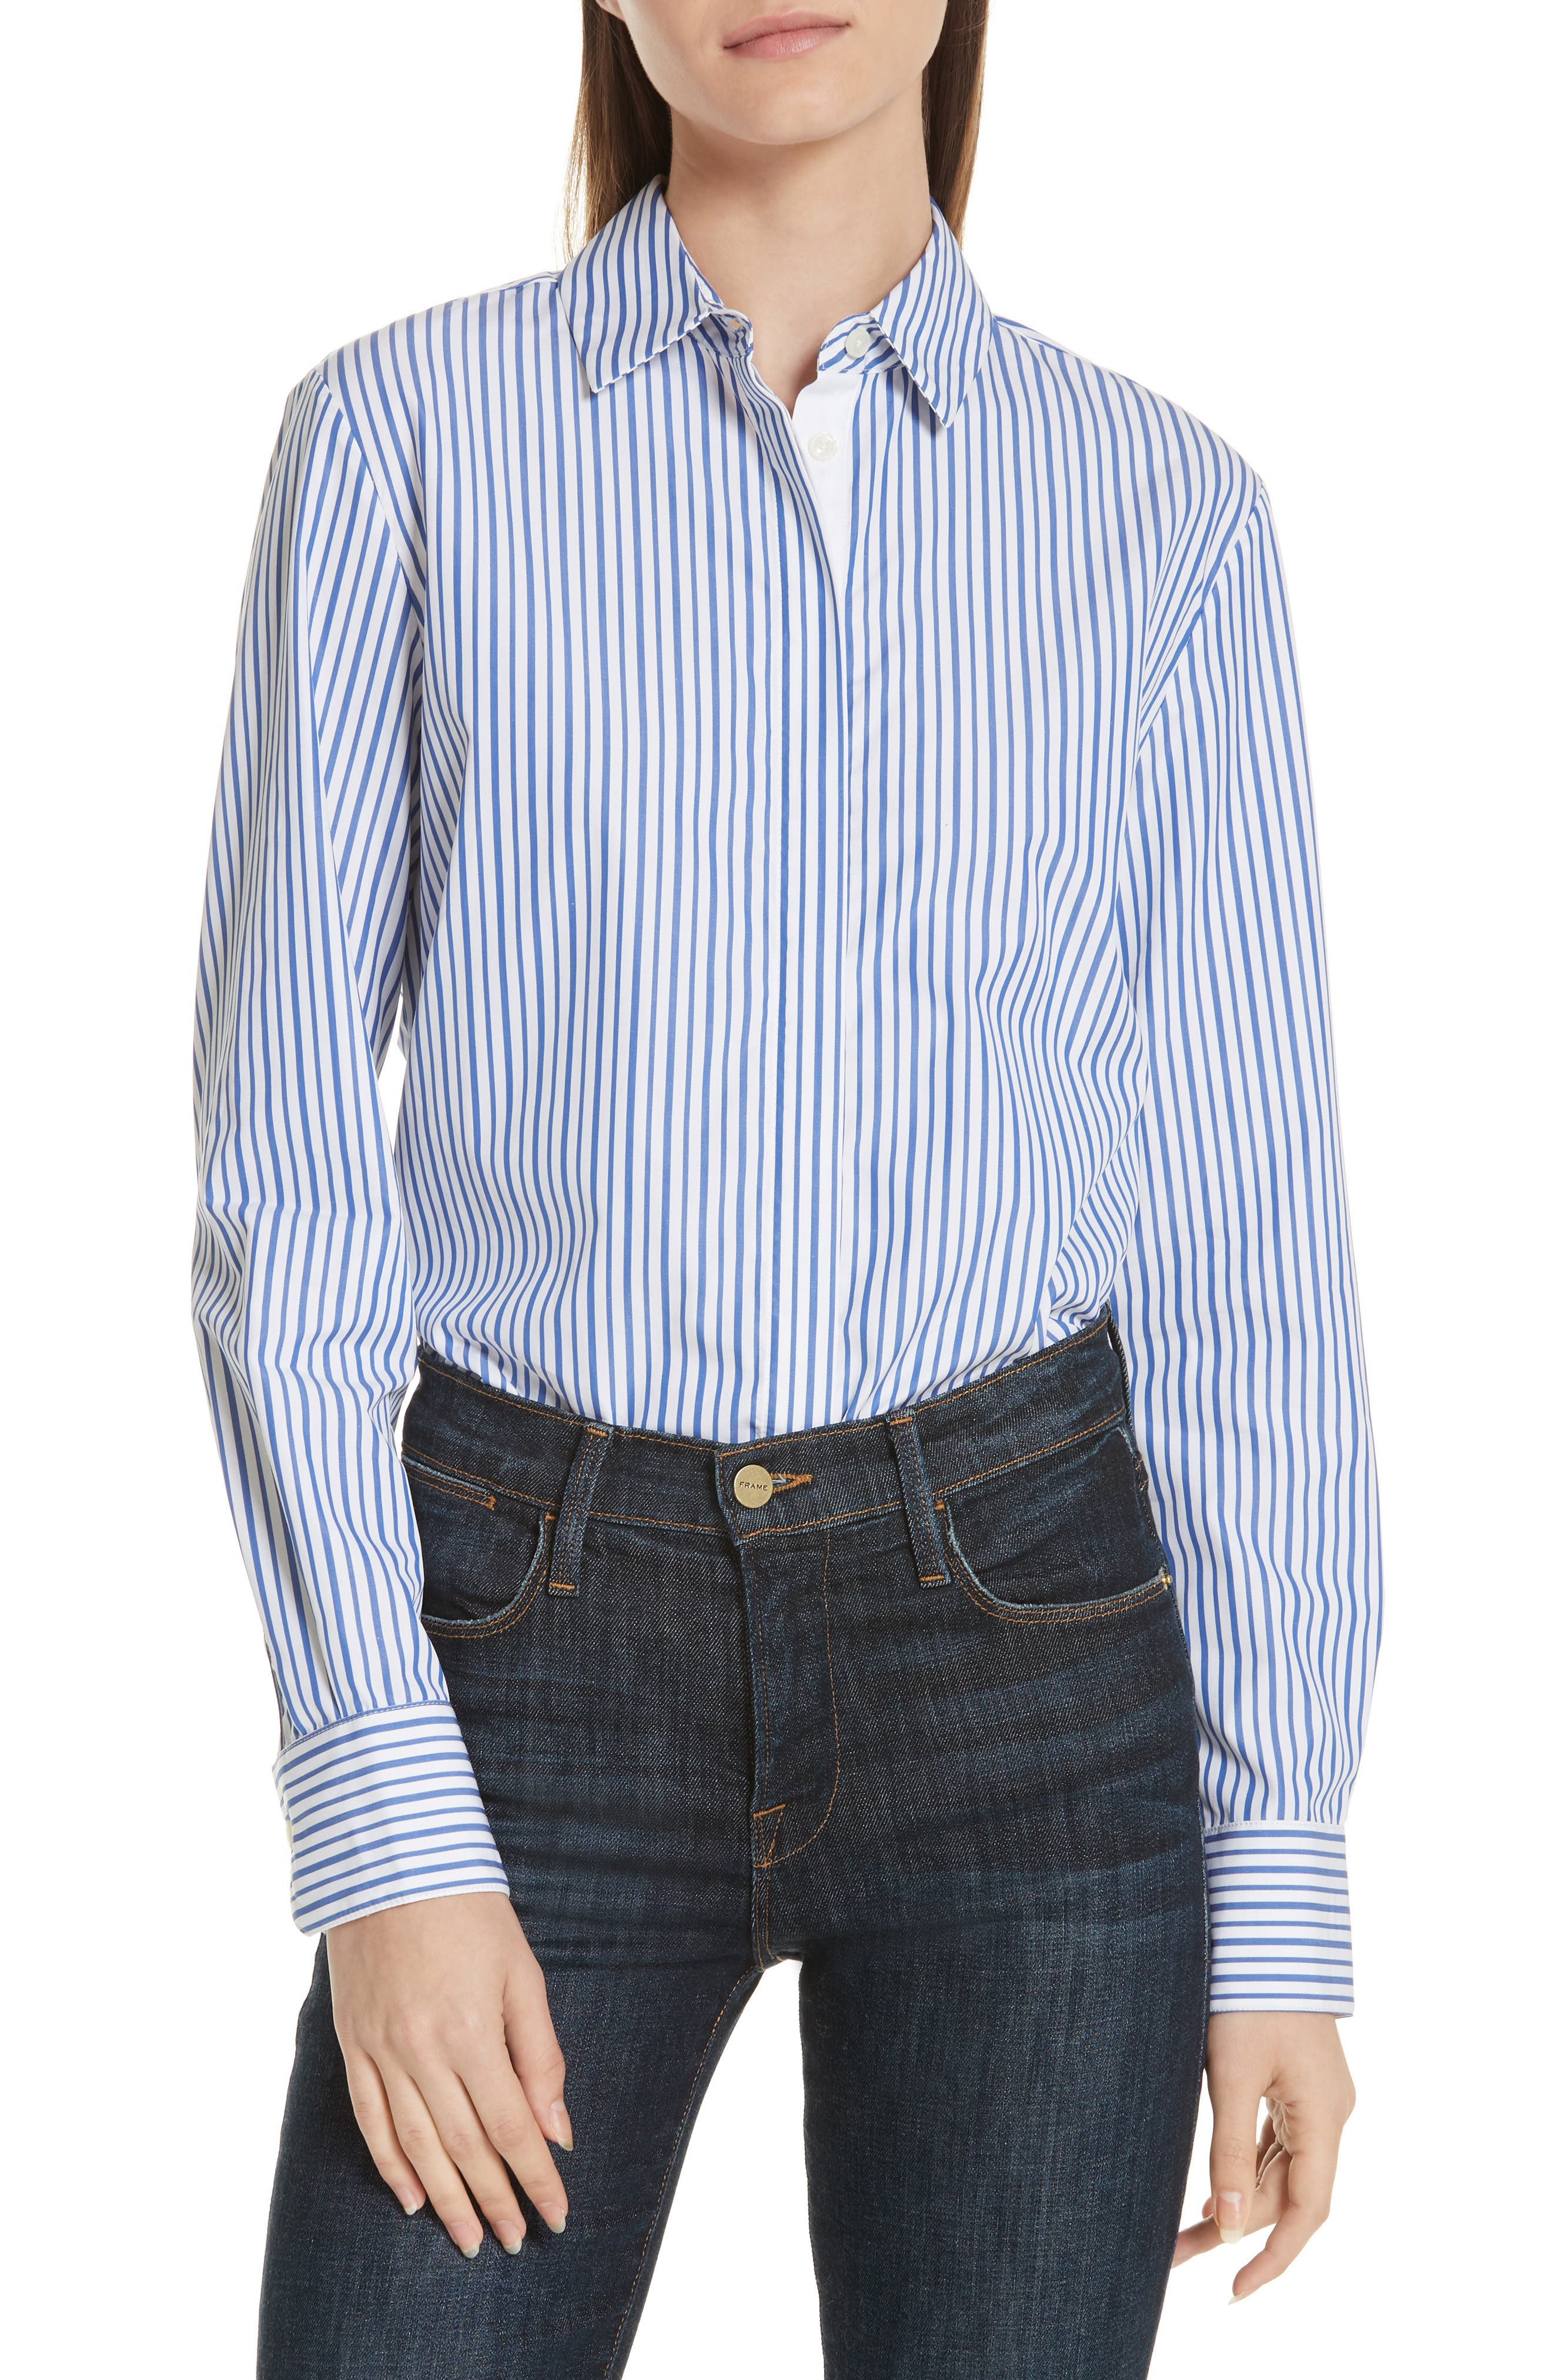 Bleu Man Shirt,                             Main thumbnail 1, color,                             BLUE AND WHITE STRIPES